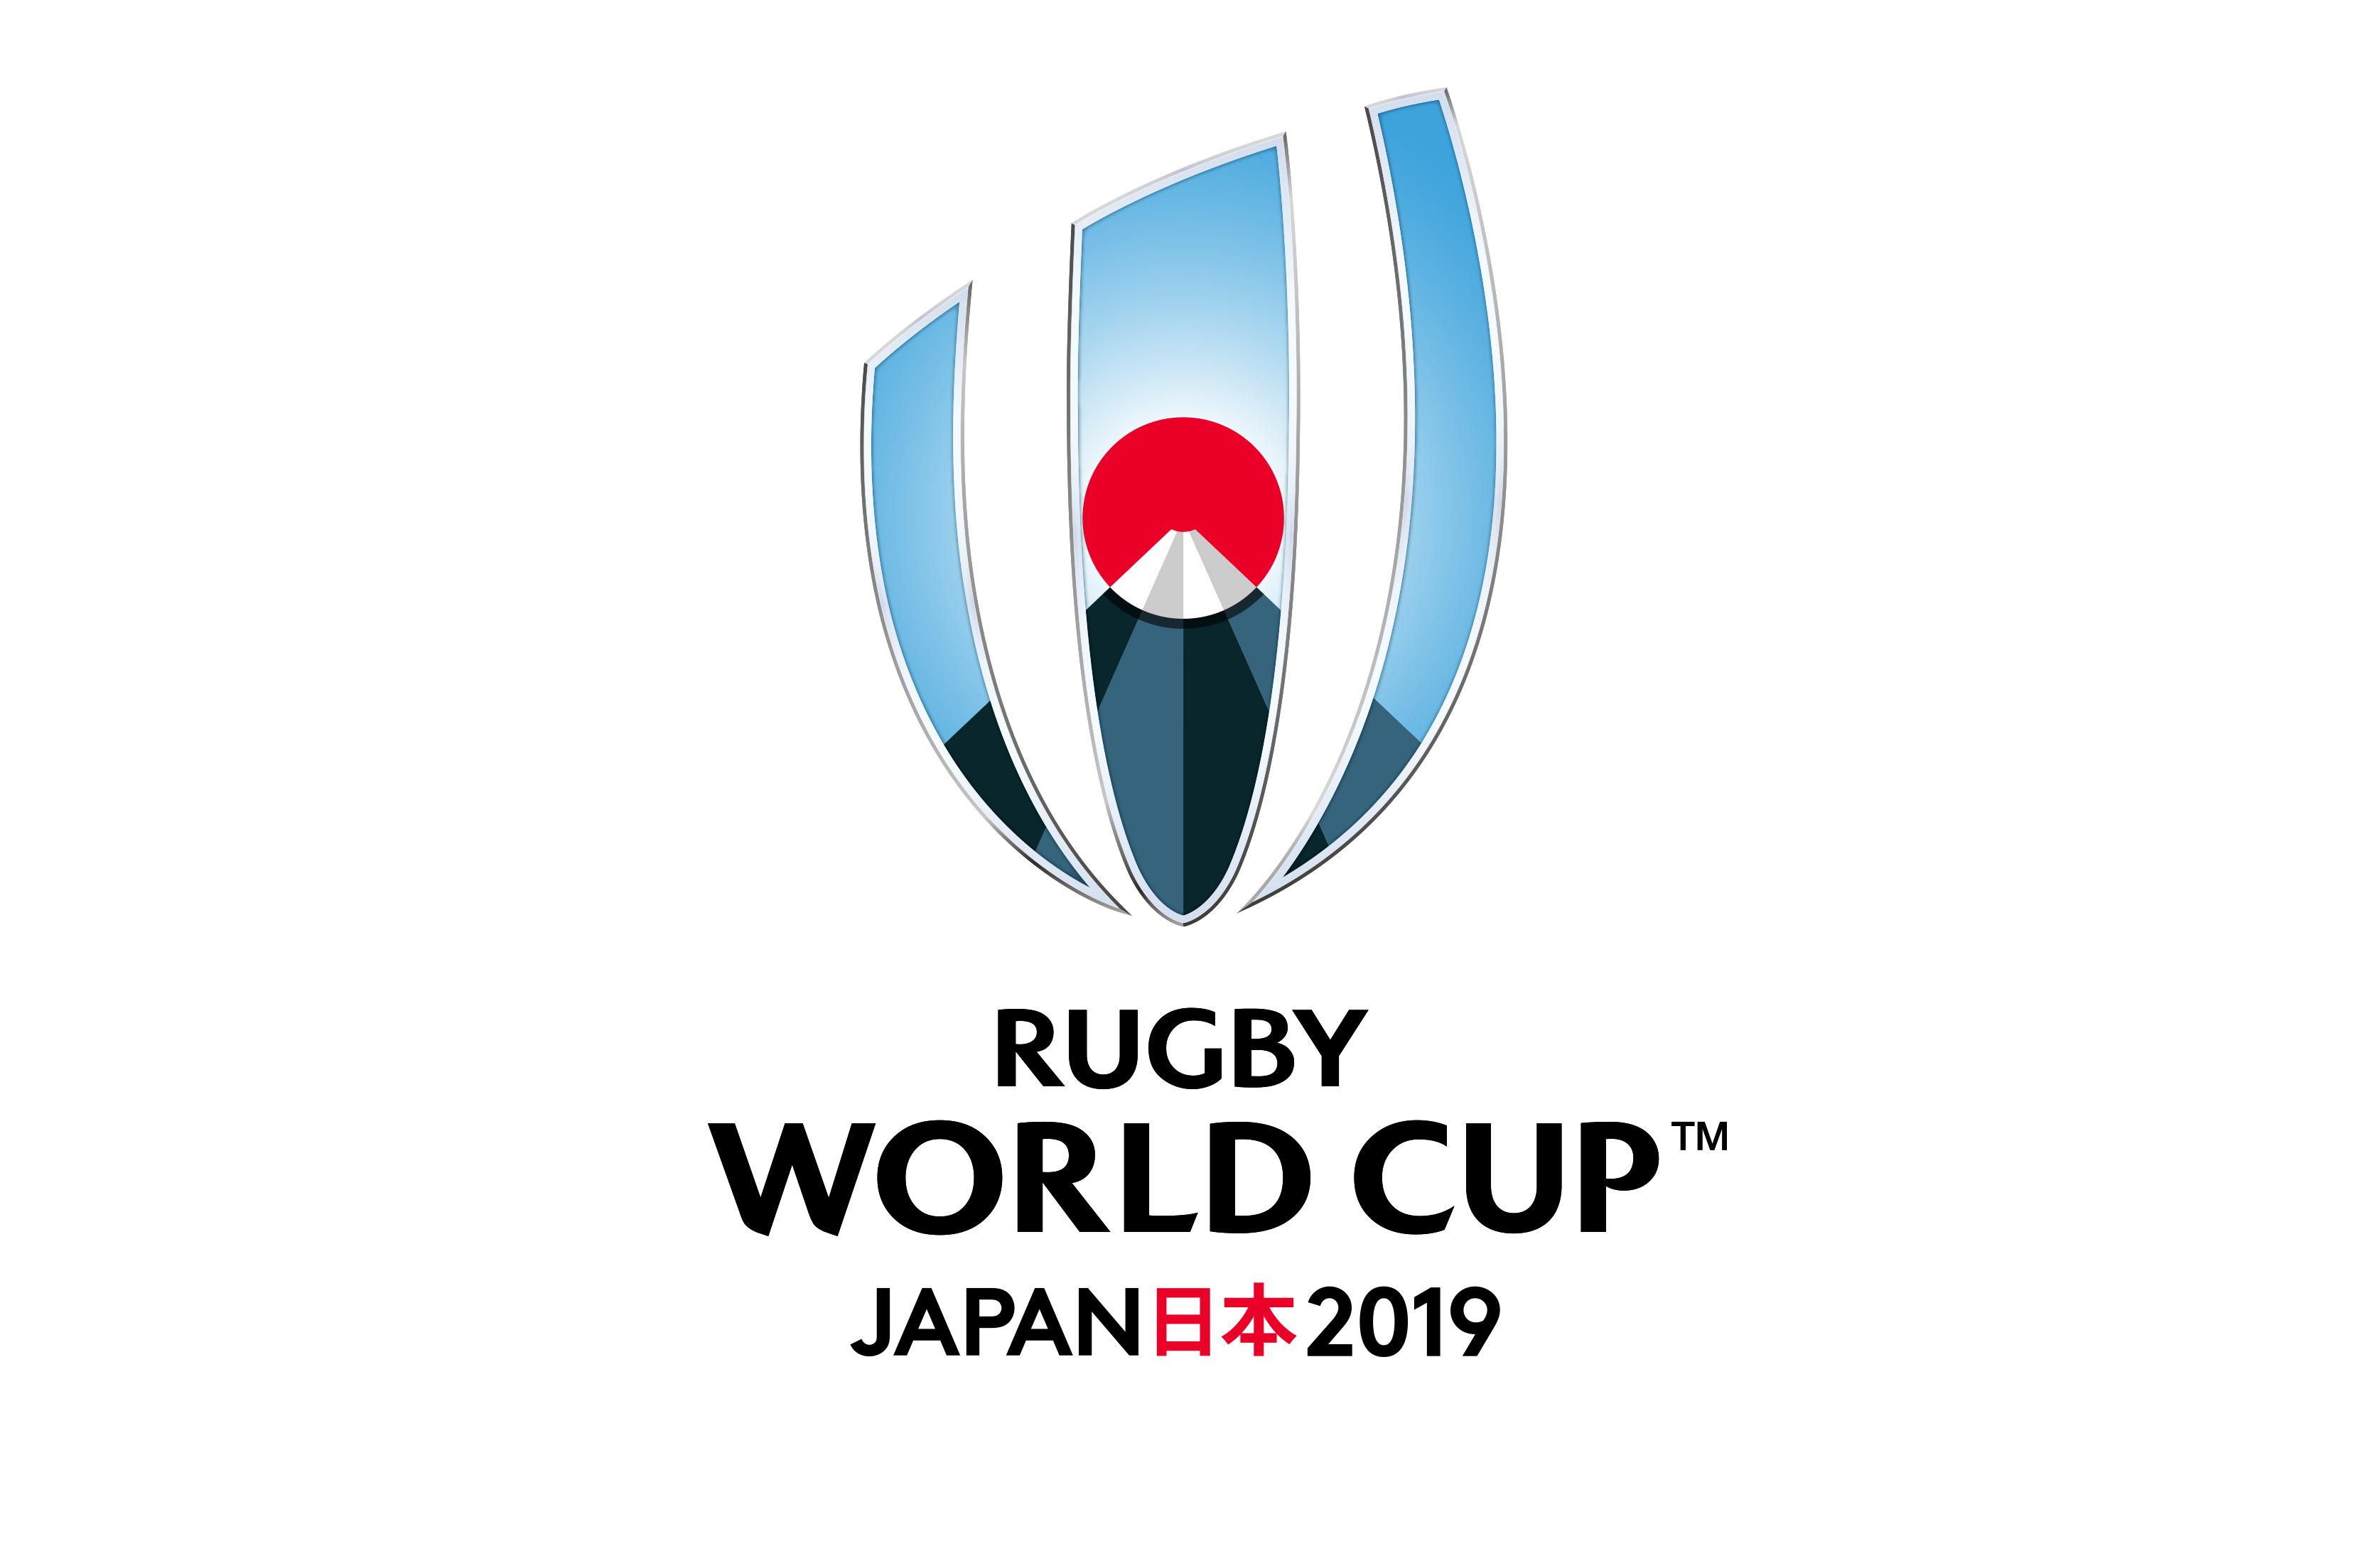 rugby world cup 2019 - photo #20